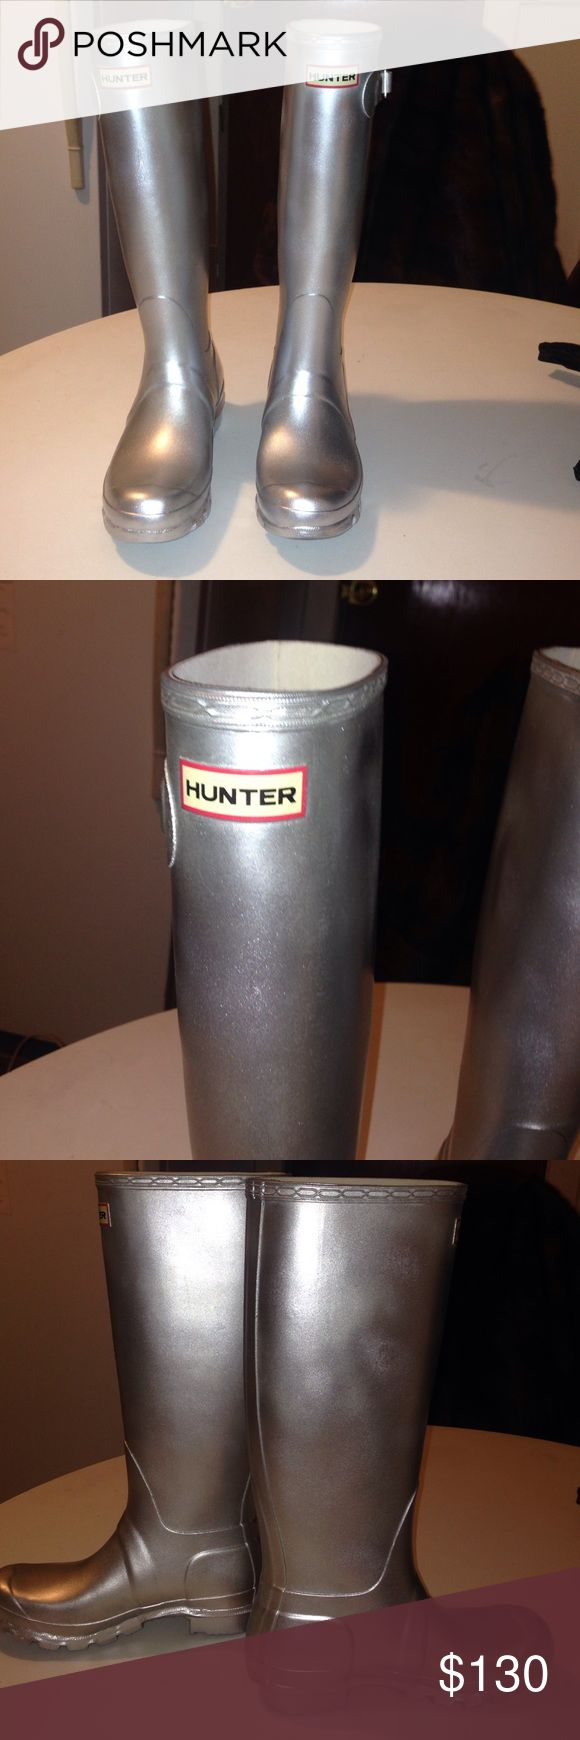 Hunter tall rain boots Metallic silver. Logo on top rim. Slight smudge near logo Good condition super cute & warm Hunter Boots Shoes Winter & Rain Boots